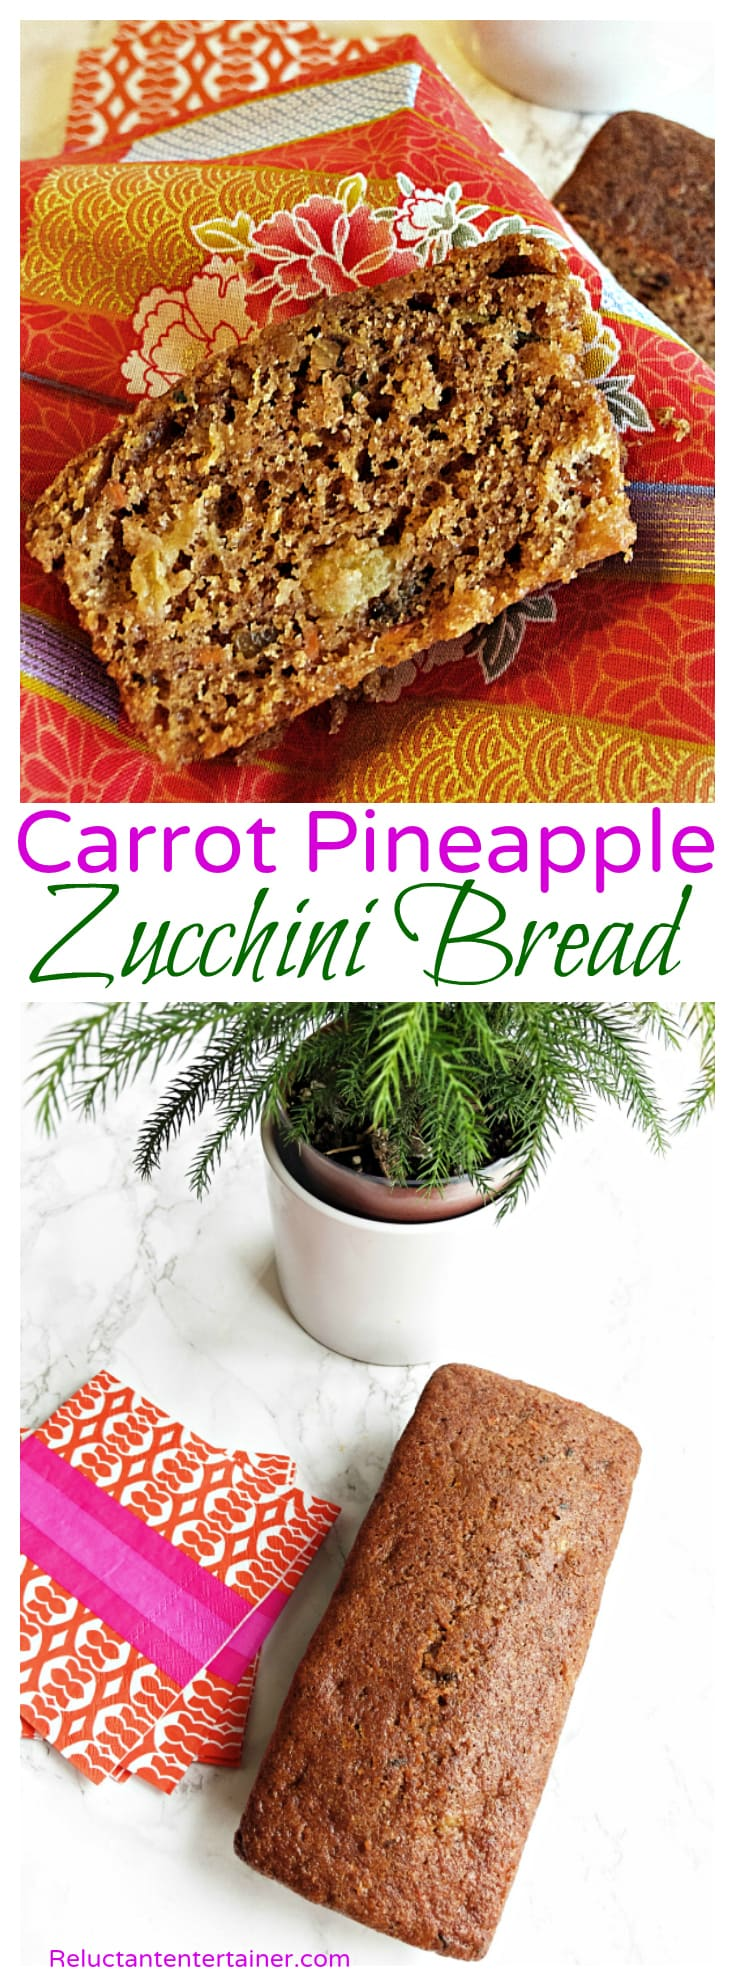 Carrot Pineapple Zucchini Bread Recipe